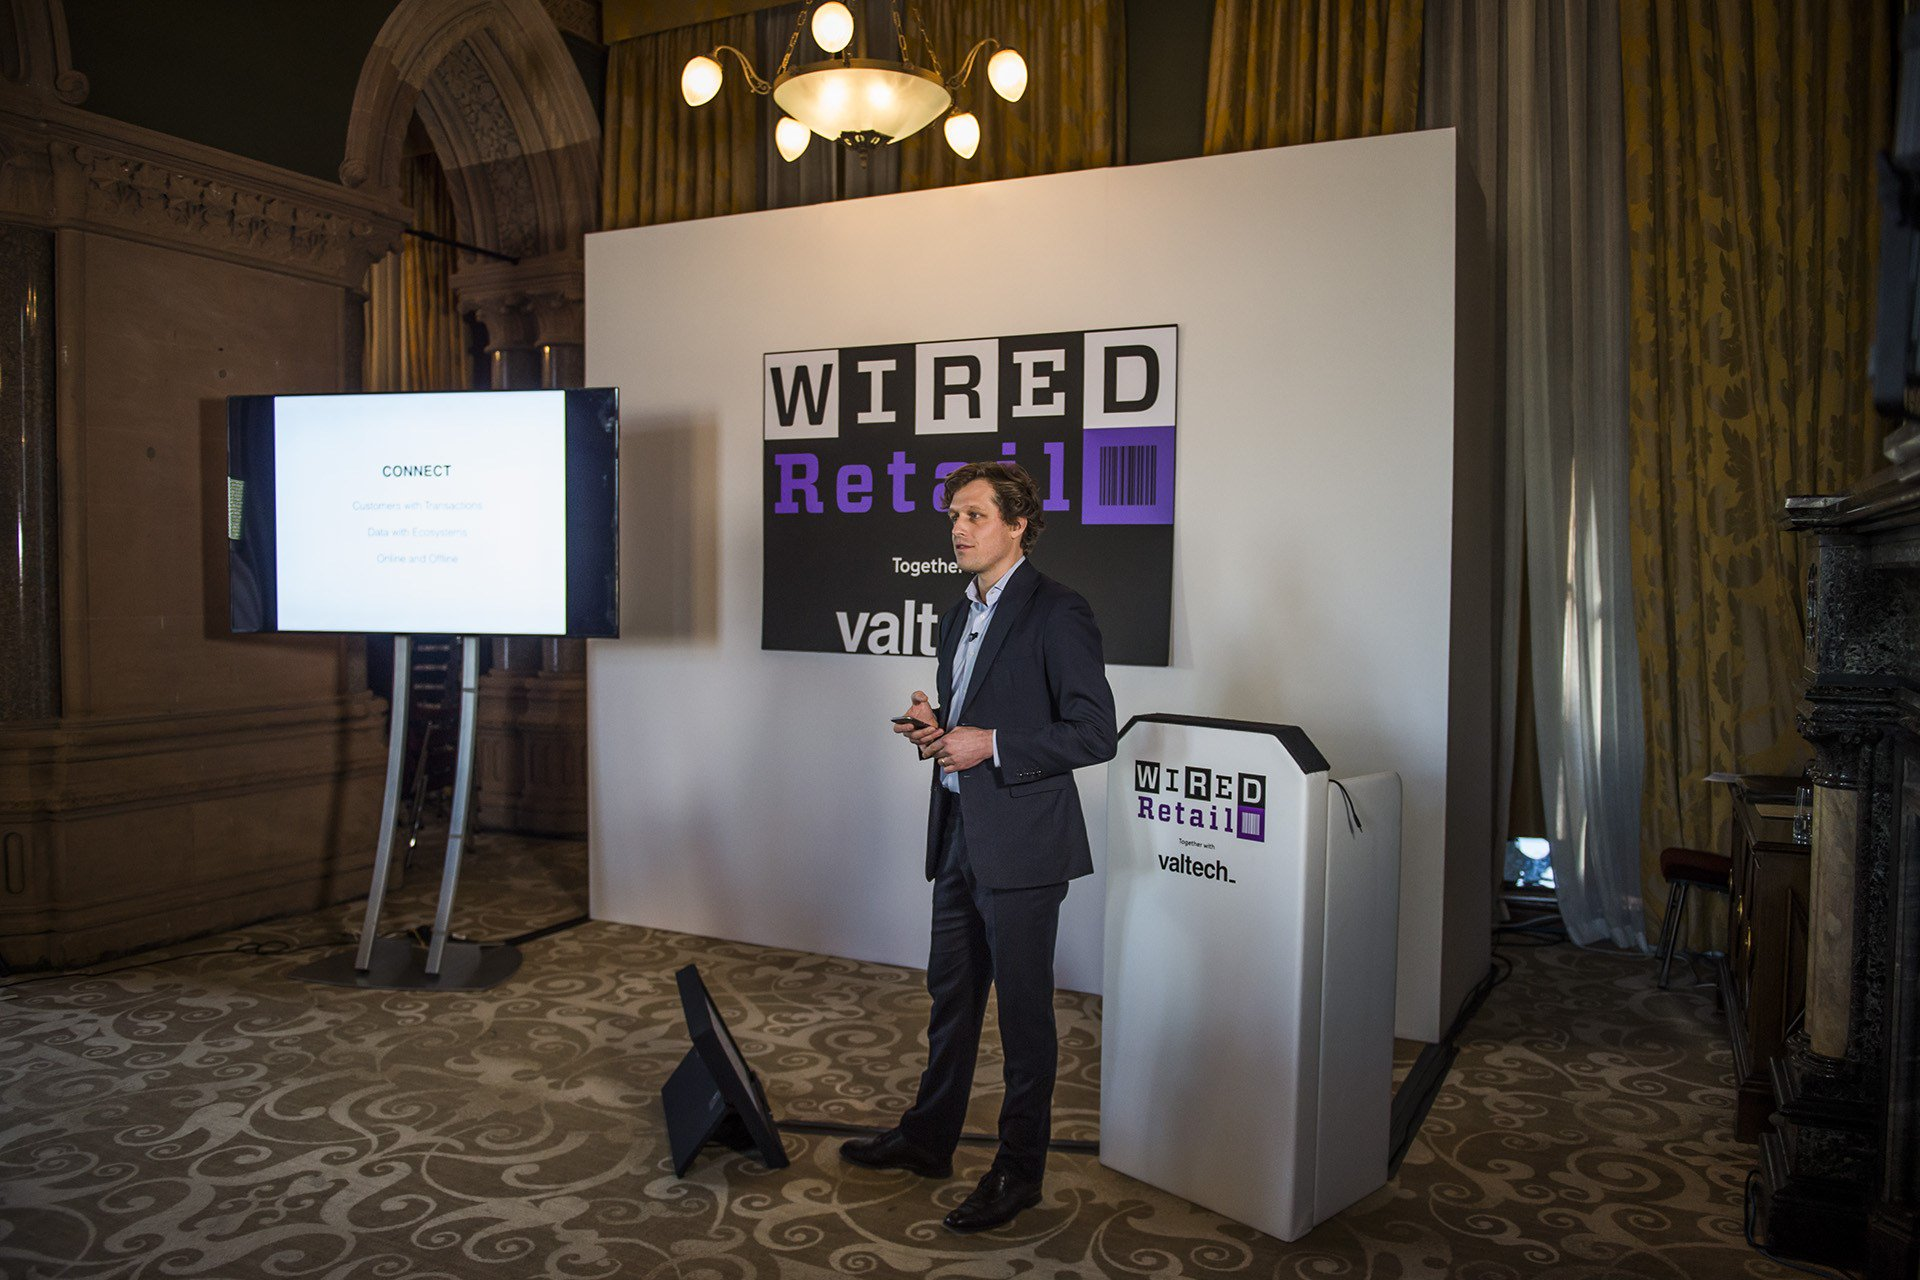 RT @WiredUK: WIRED Retail 2015 startup stage: the future of data analytics https://t.co/jqC73MHQH0 https://t.co/3kIvlQjsu9